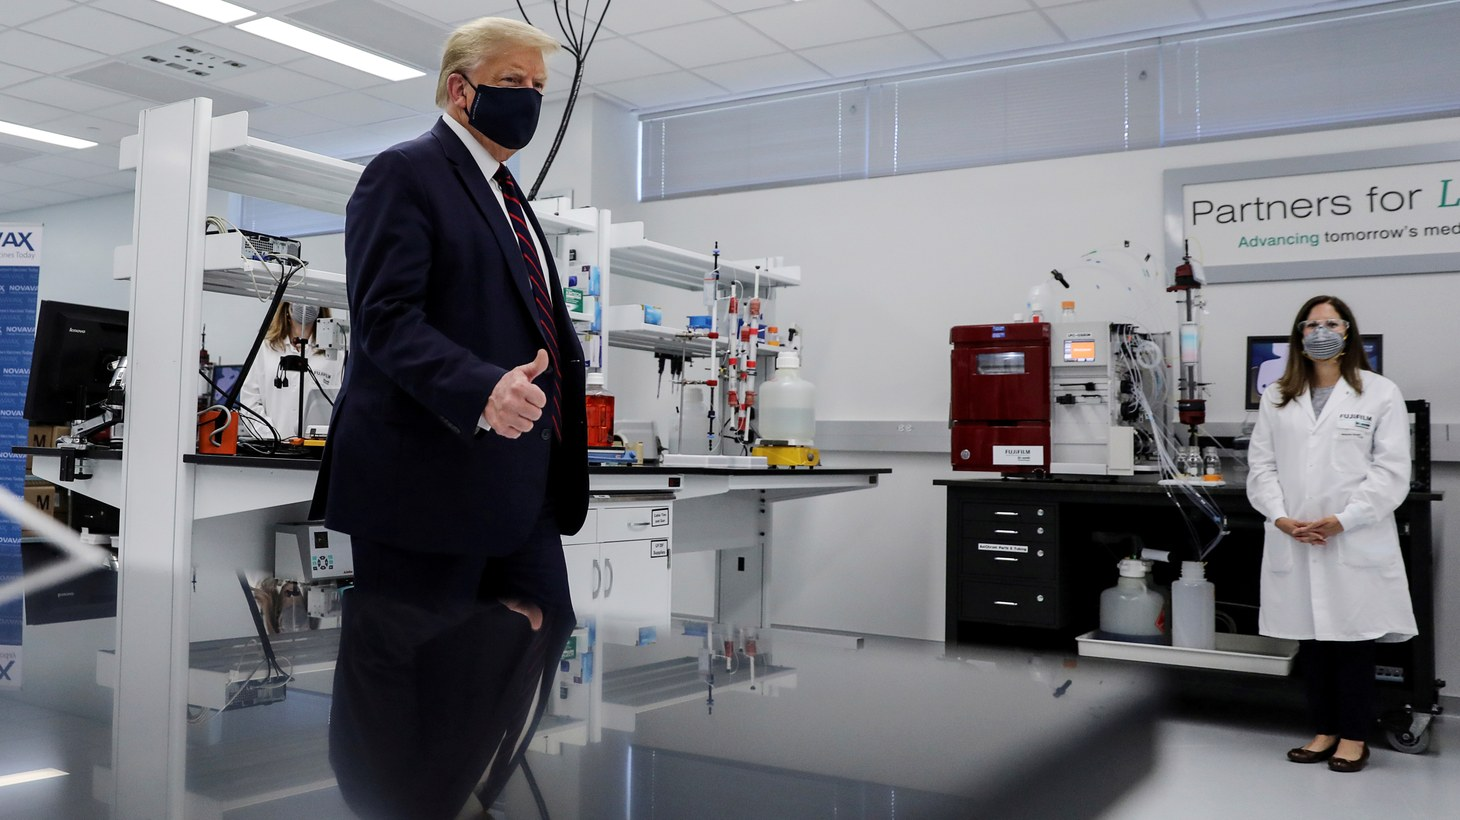 U.S. President Donald Trump gestures during a tour of the Fujifilm Diosynth Biotechnologies' Innovation Center, a pharmaceutical manufacturing plant where components for a potential coronavirus disease (COVID-19) vaccine candidate are being developed, in Morrrisville, North Carolina, U.S., July 27, 2020.